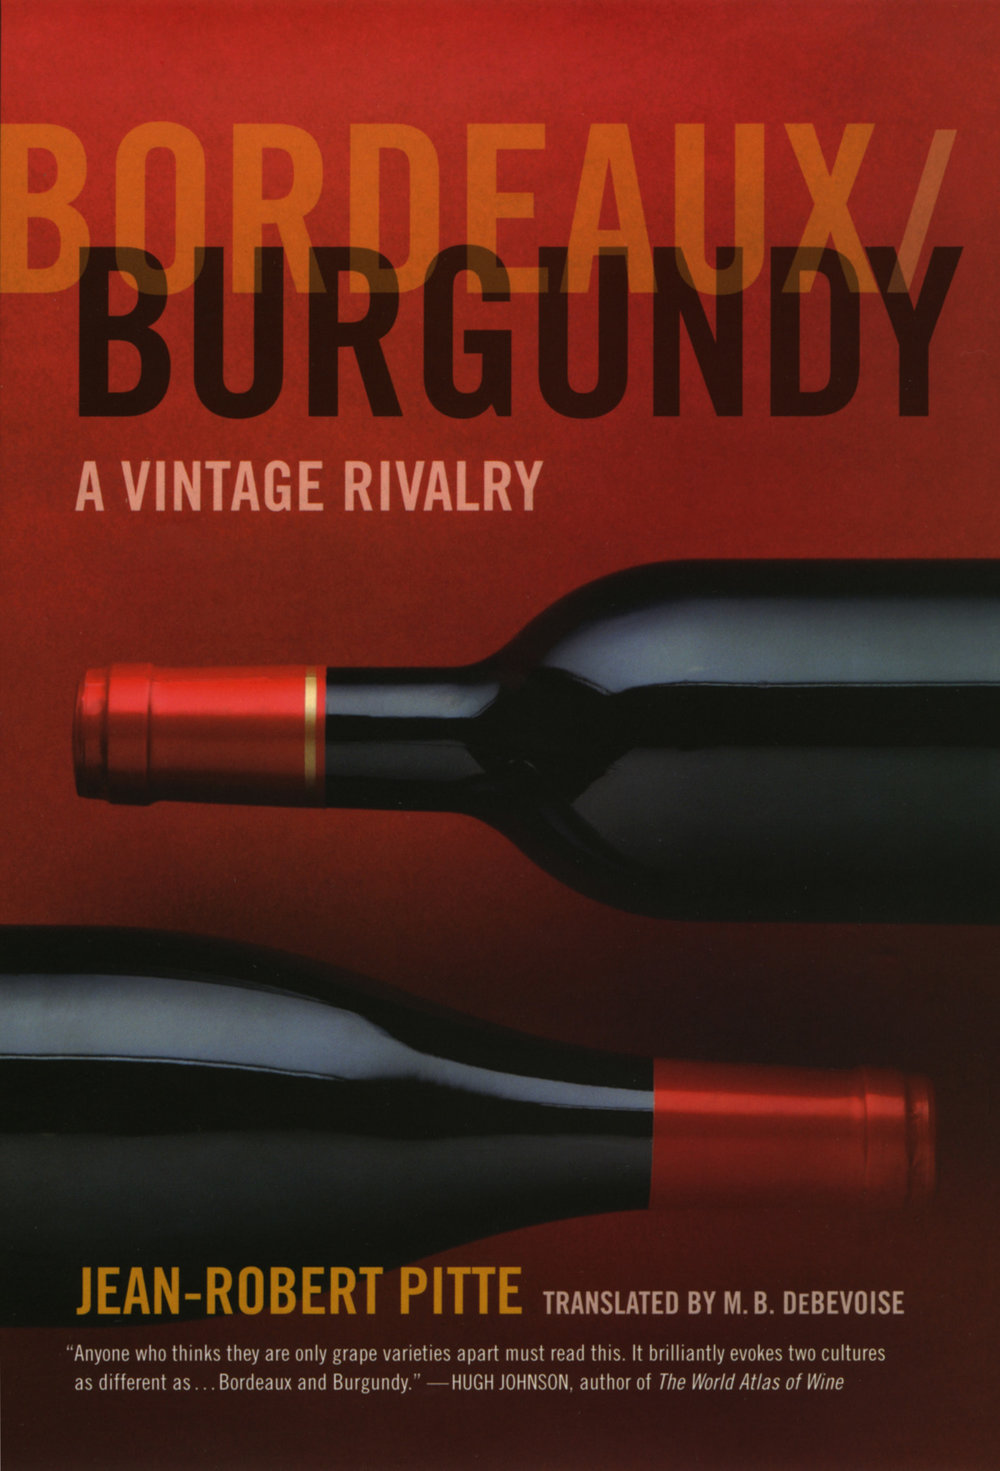 bordeaux-burgundy.jpg